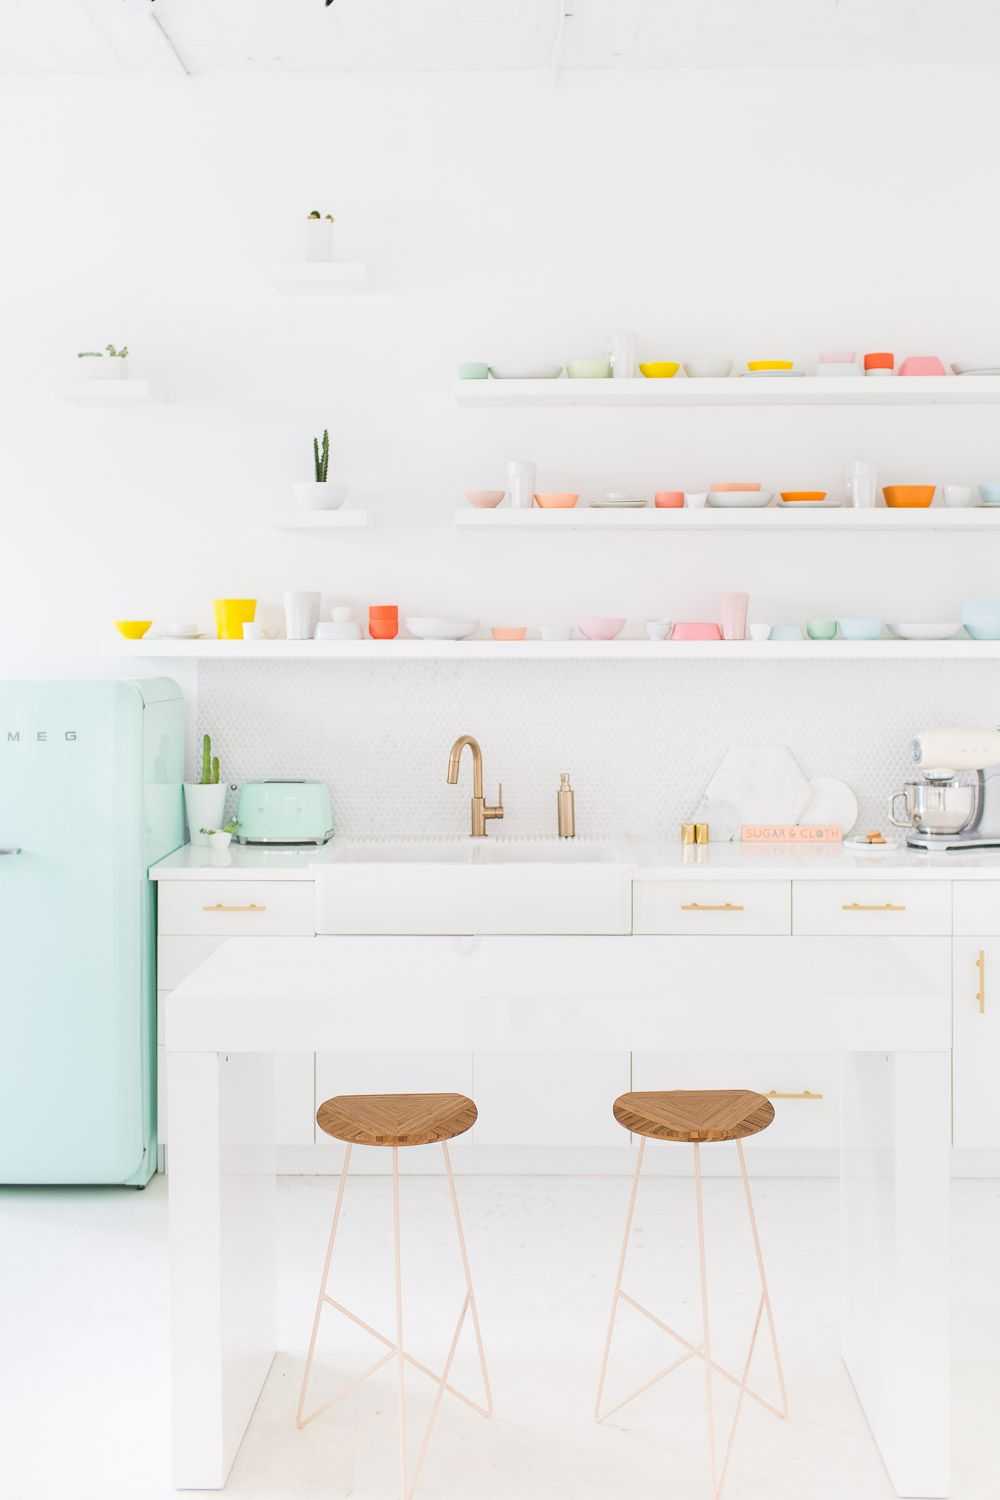 50 Small Kitchen Ideas That Won't Make You Feel Claustrophobic